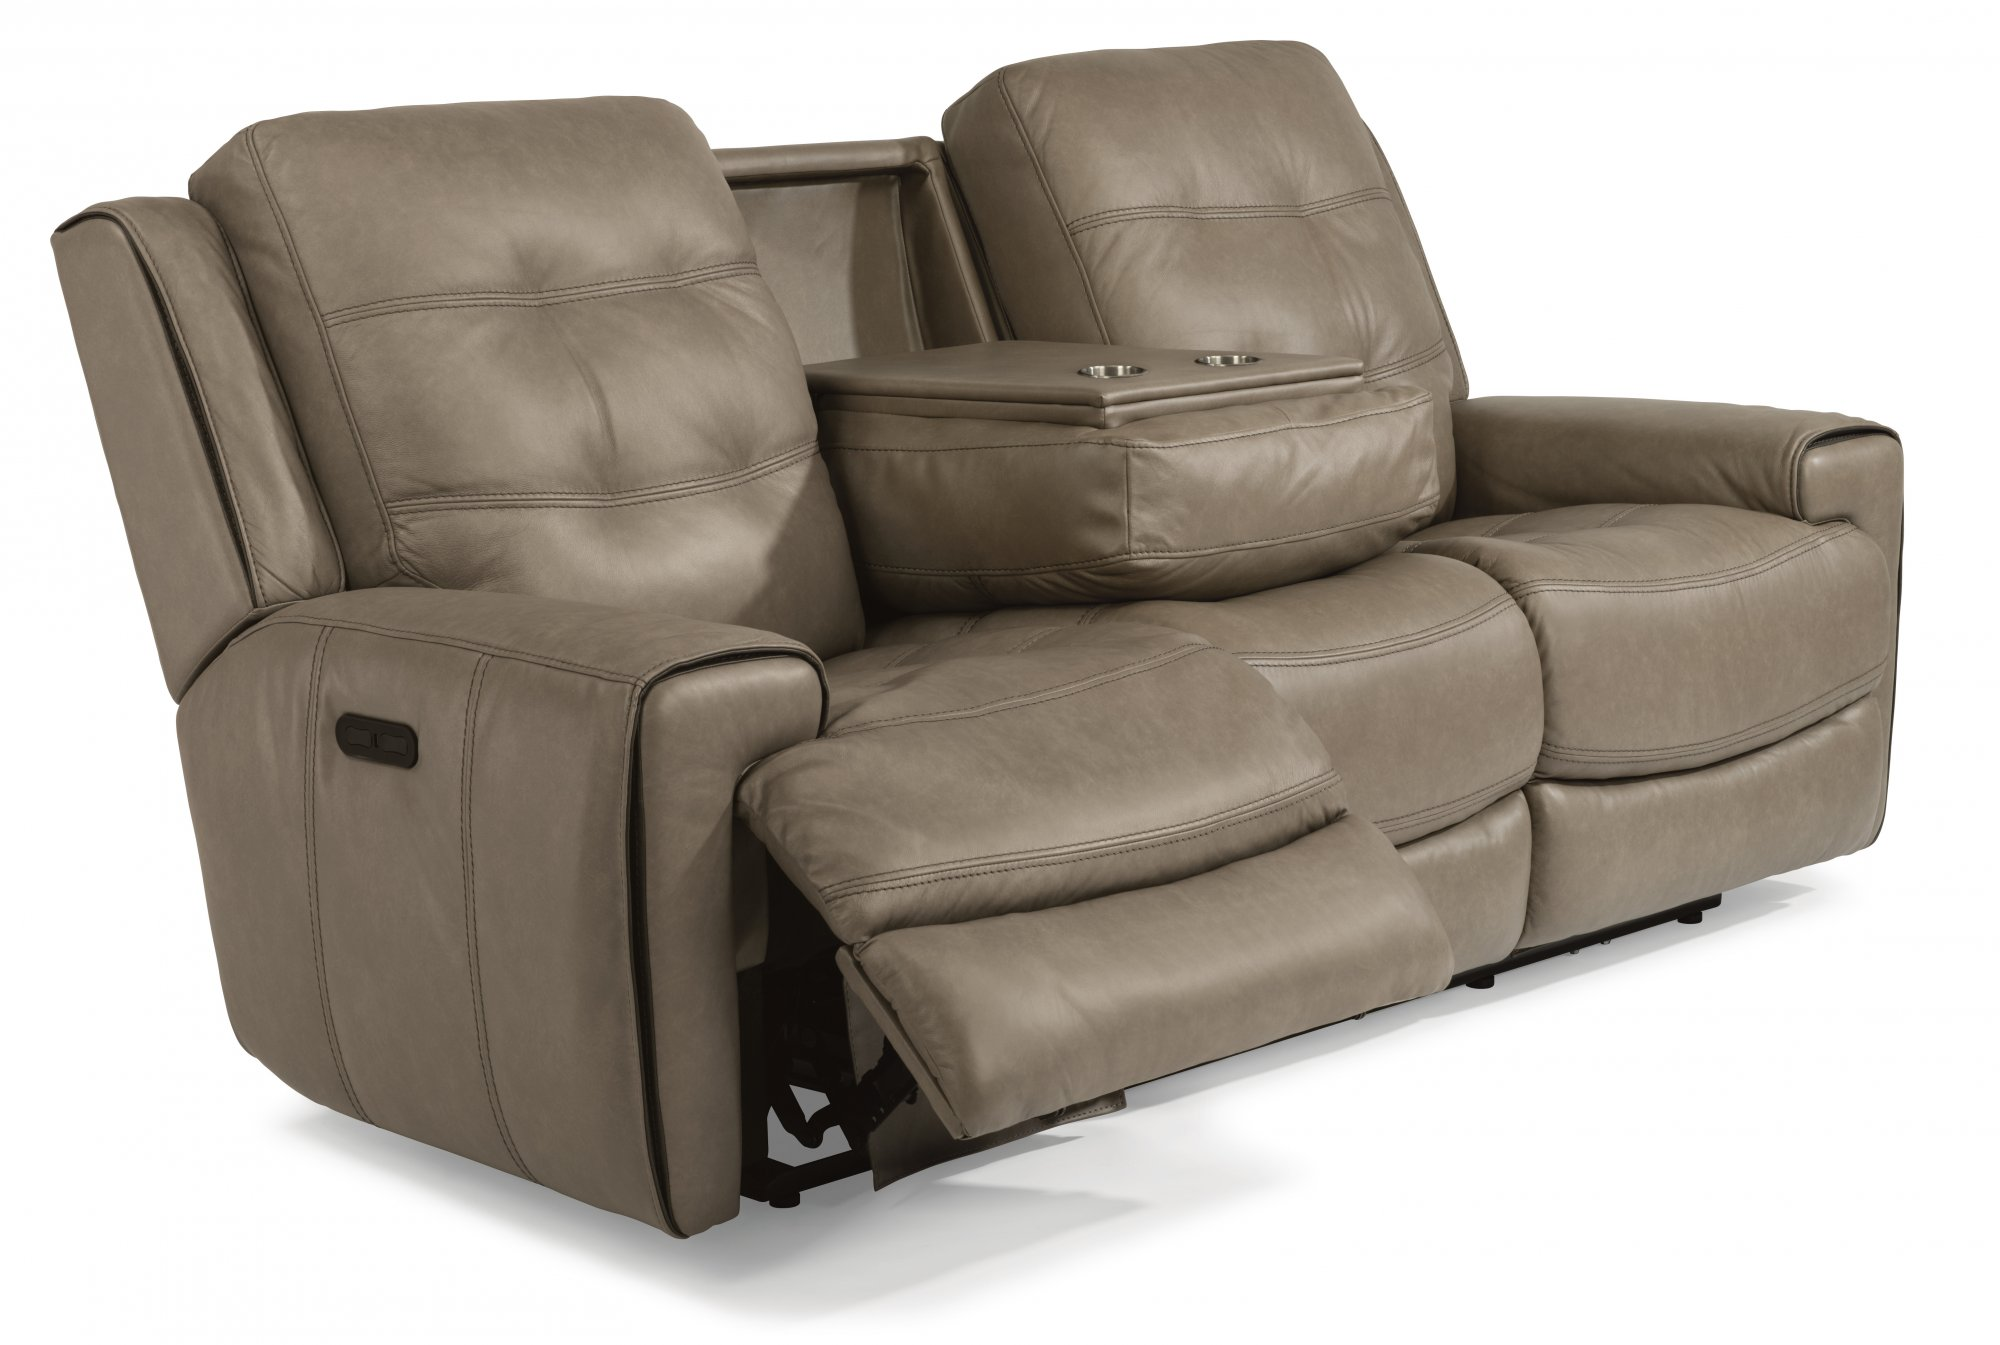 Elegant Power Recliner Sofa 53 With Additional Sofa Design Ideas with Power Recliner Sofa